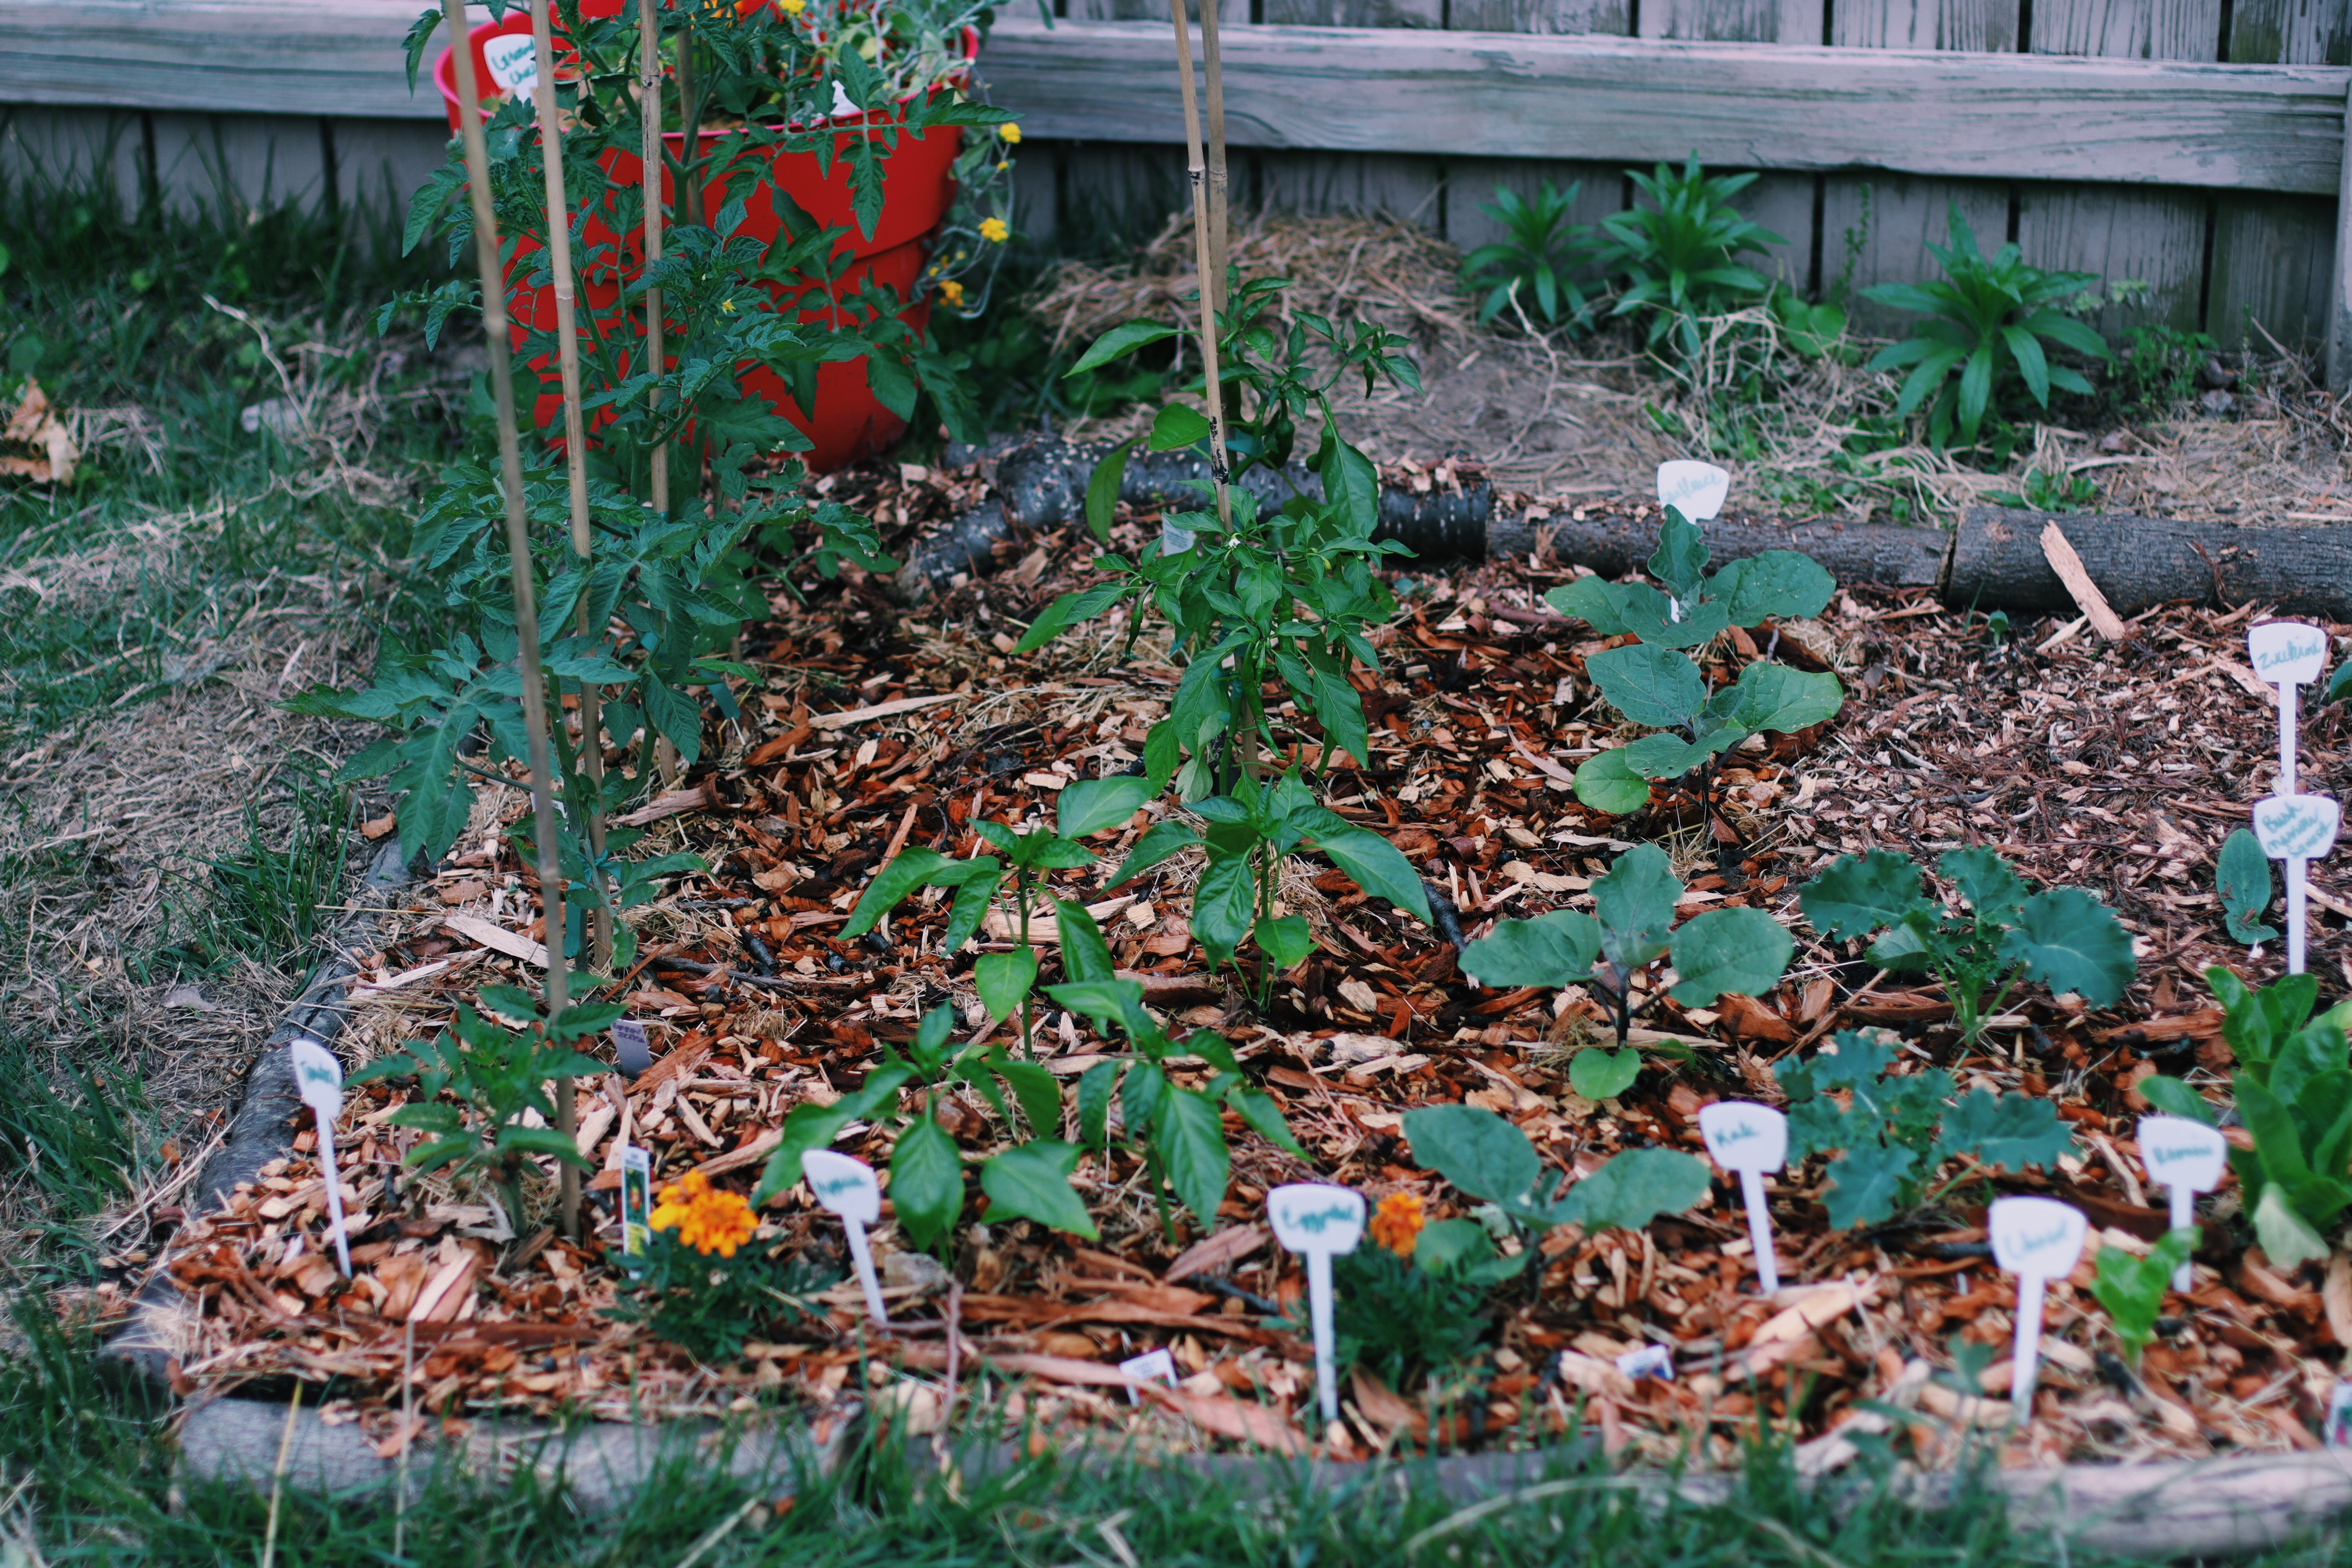 Square Foot Gardening Method in a suburban backyard